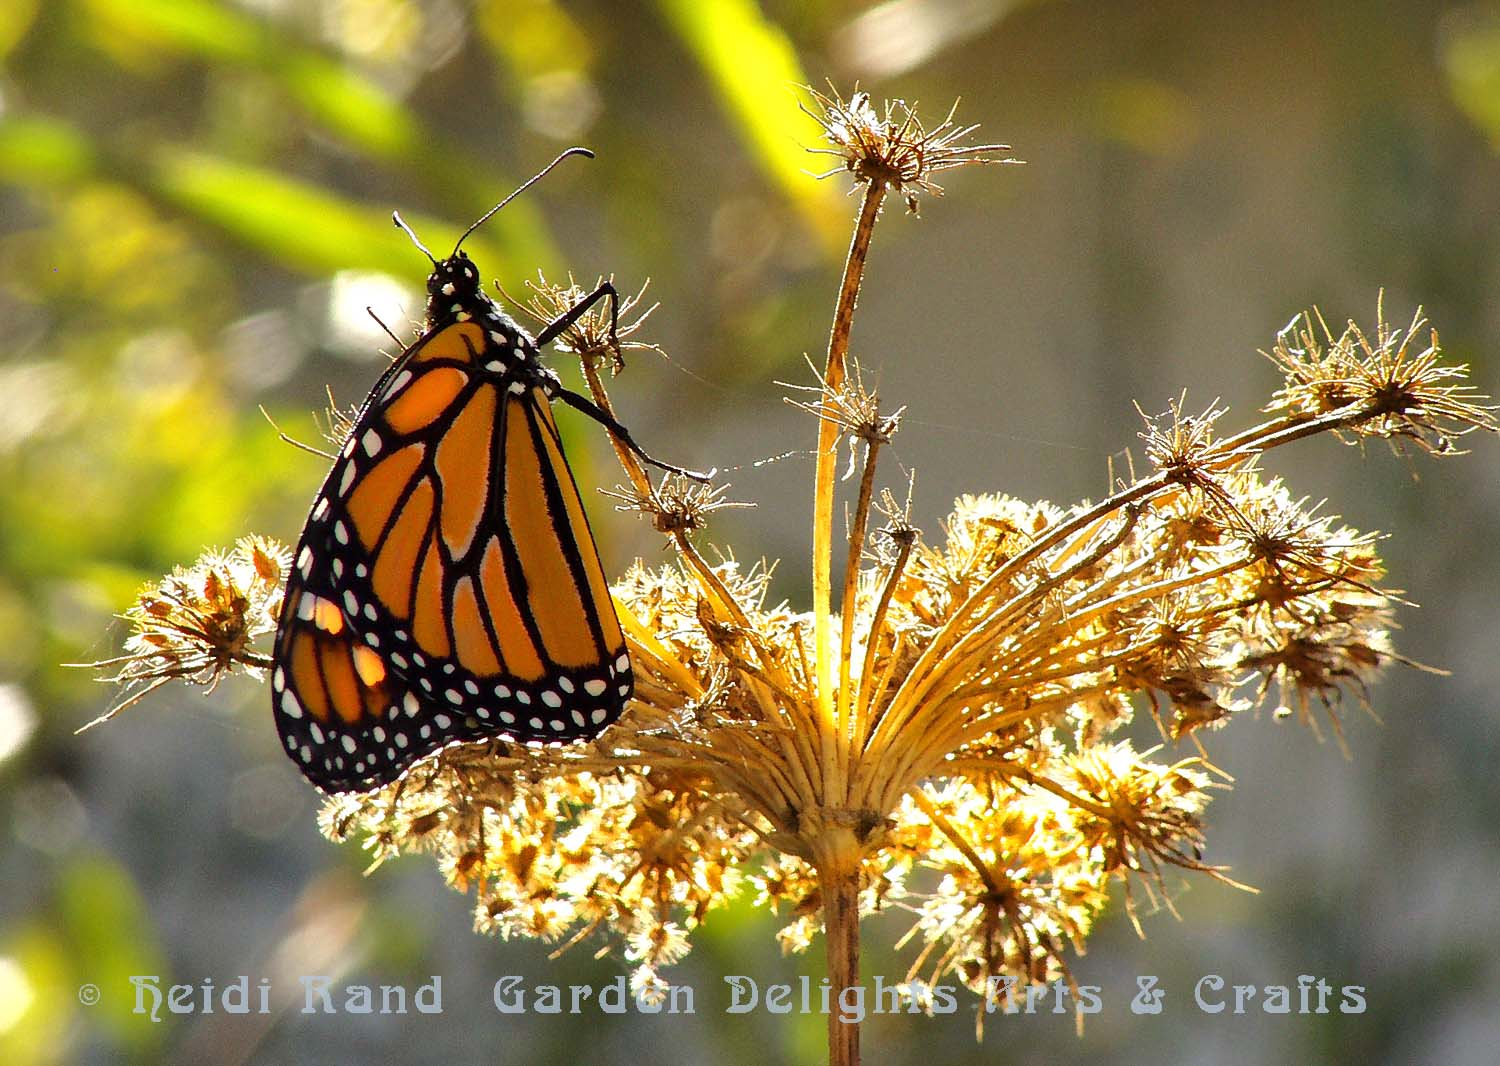 Butterflies | Garden Delights Arts & Crafts Queen Butterfly Vs Monarch